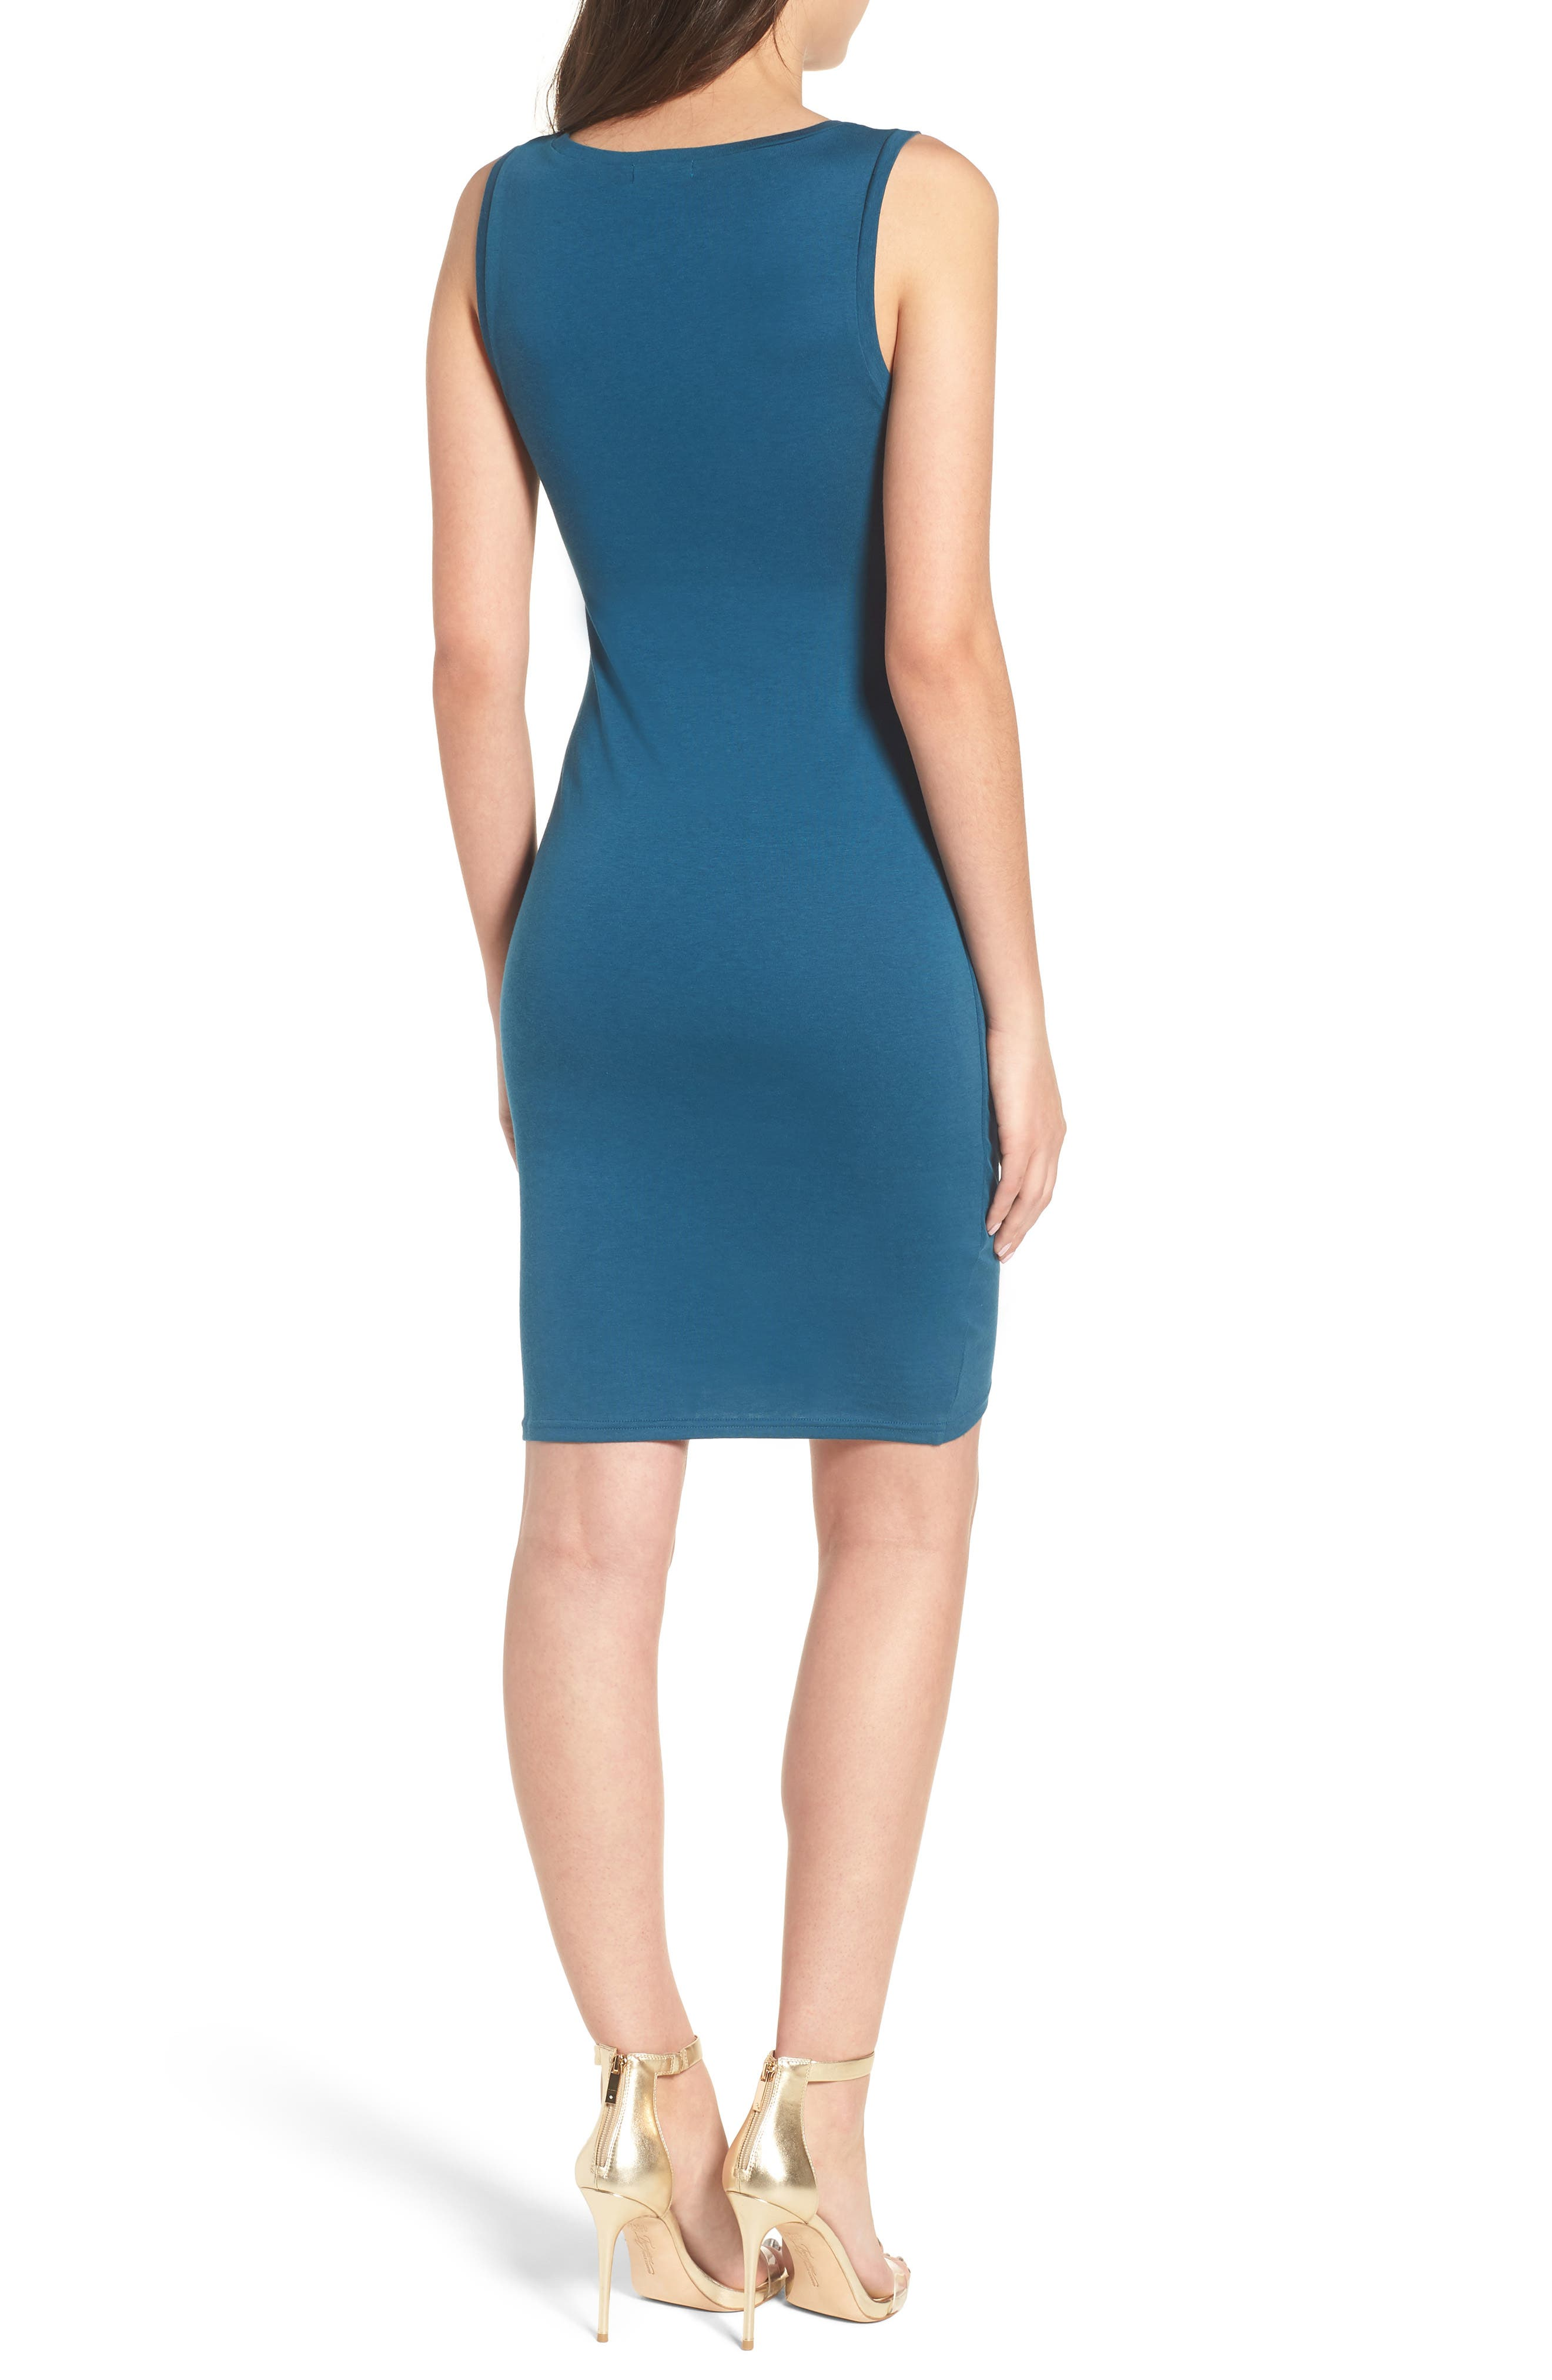 Ruched Body-Con Tank Dress,                             Alternate thumbnail 2, color,                             Teal Seagate